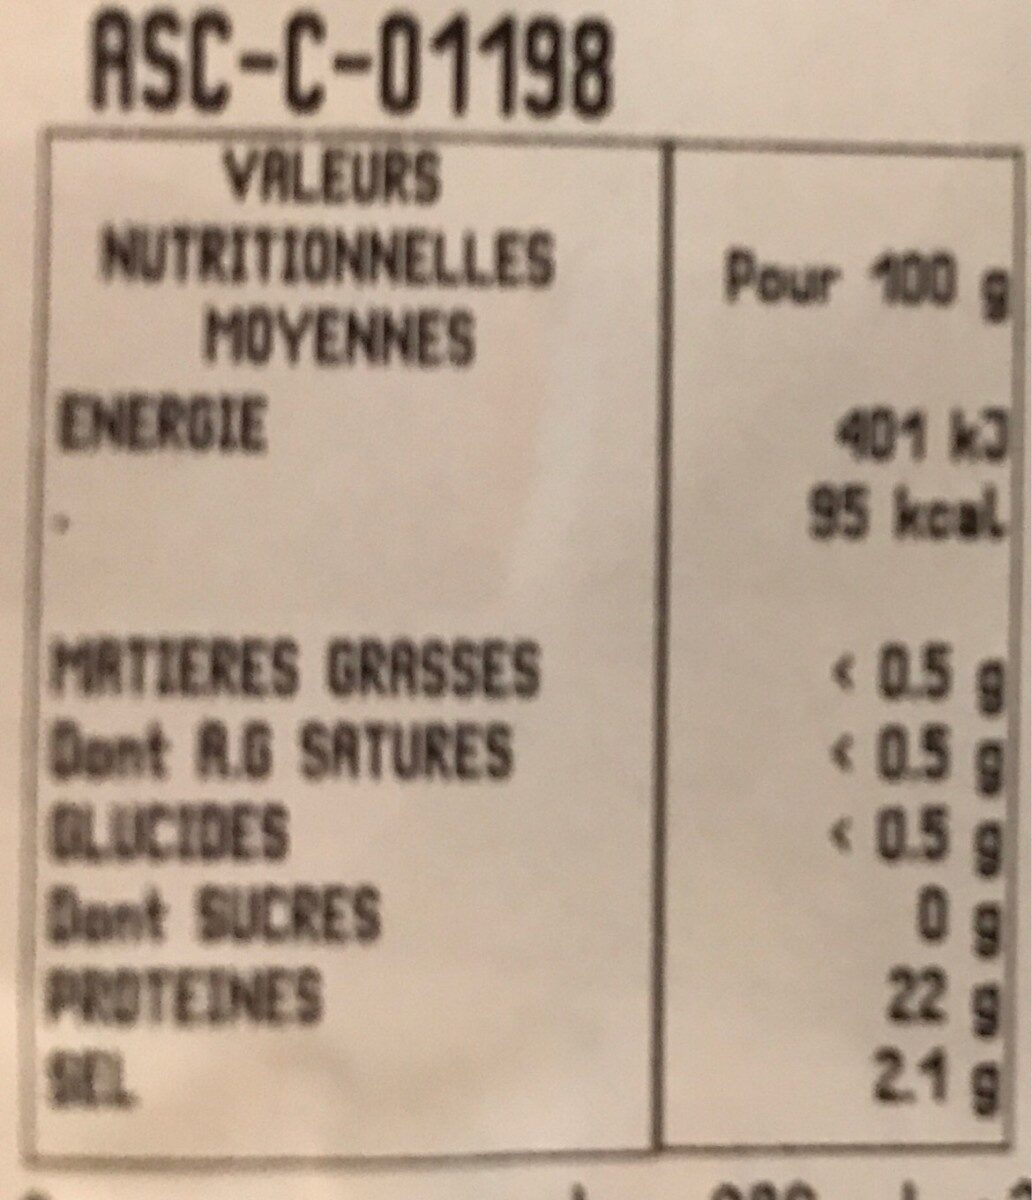 CREVETTES ENTIERES CUITES REFRIGEREES - Nutrition facts - fr